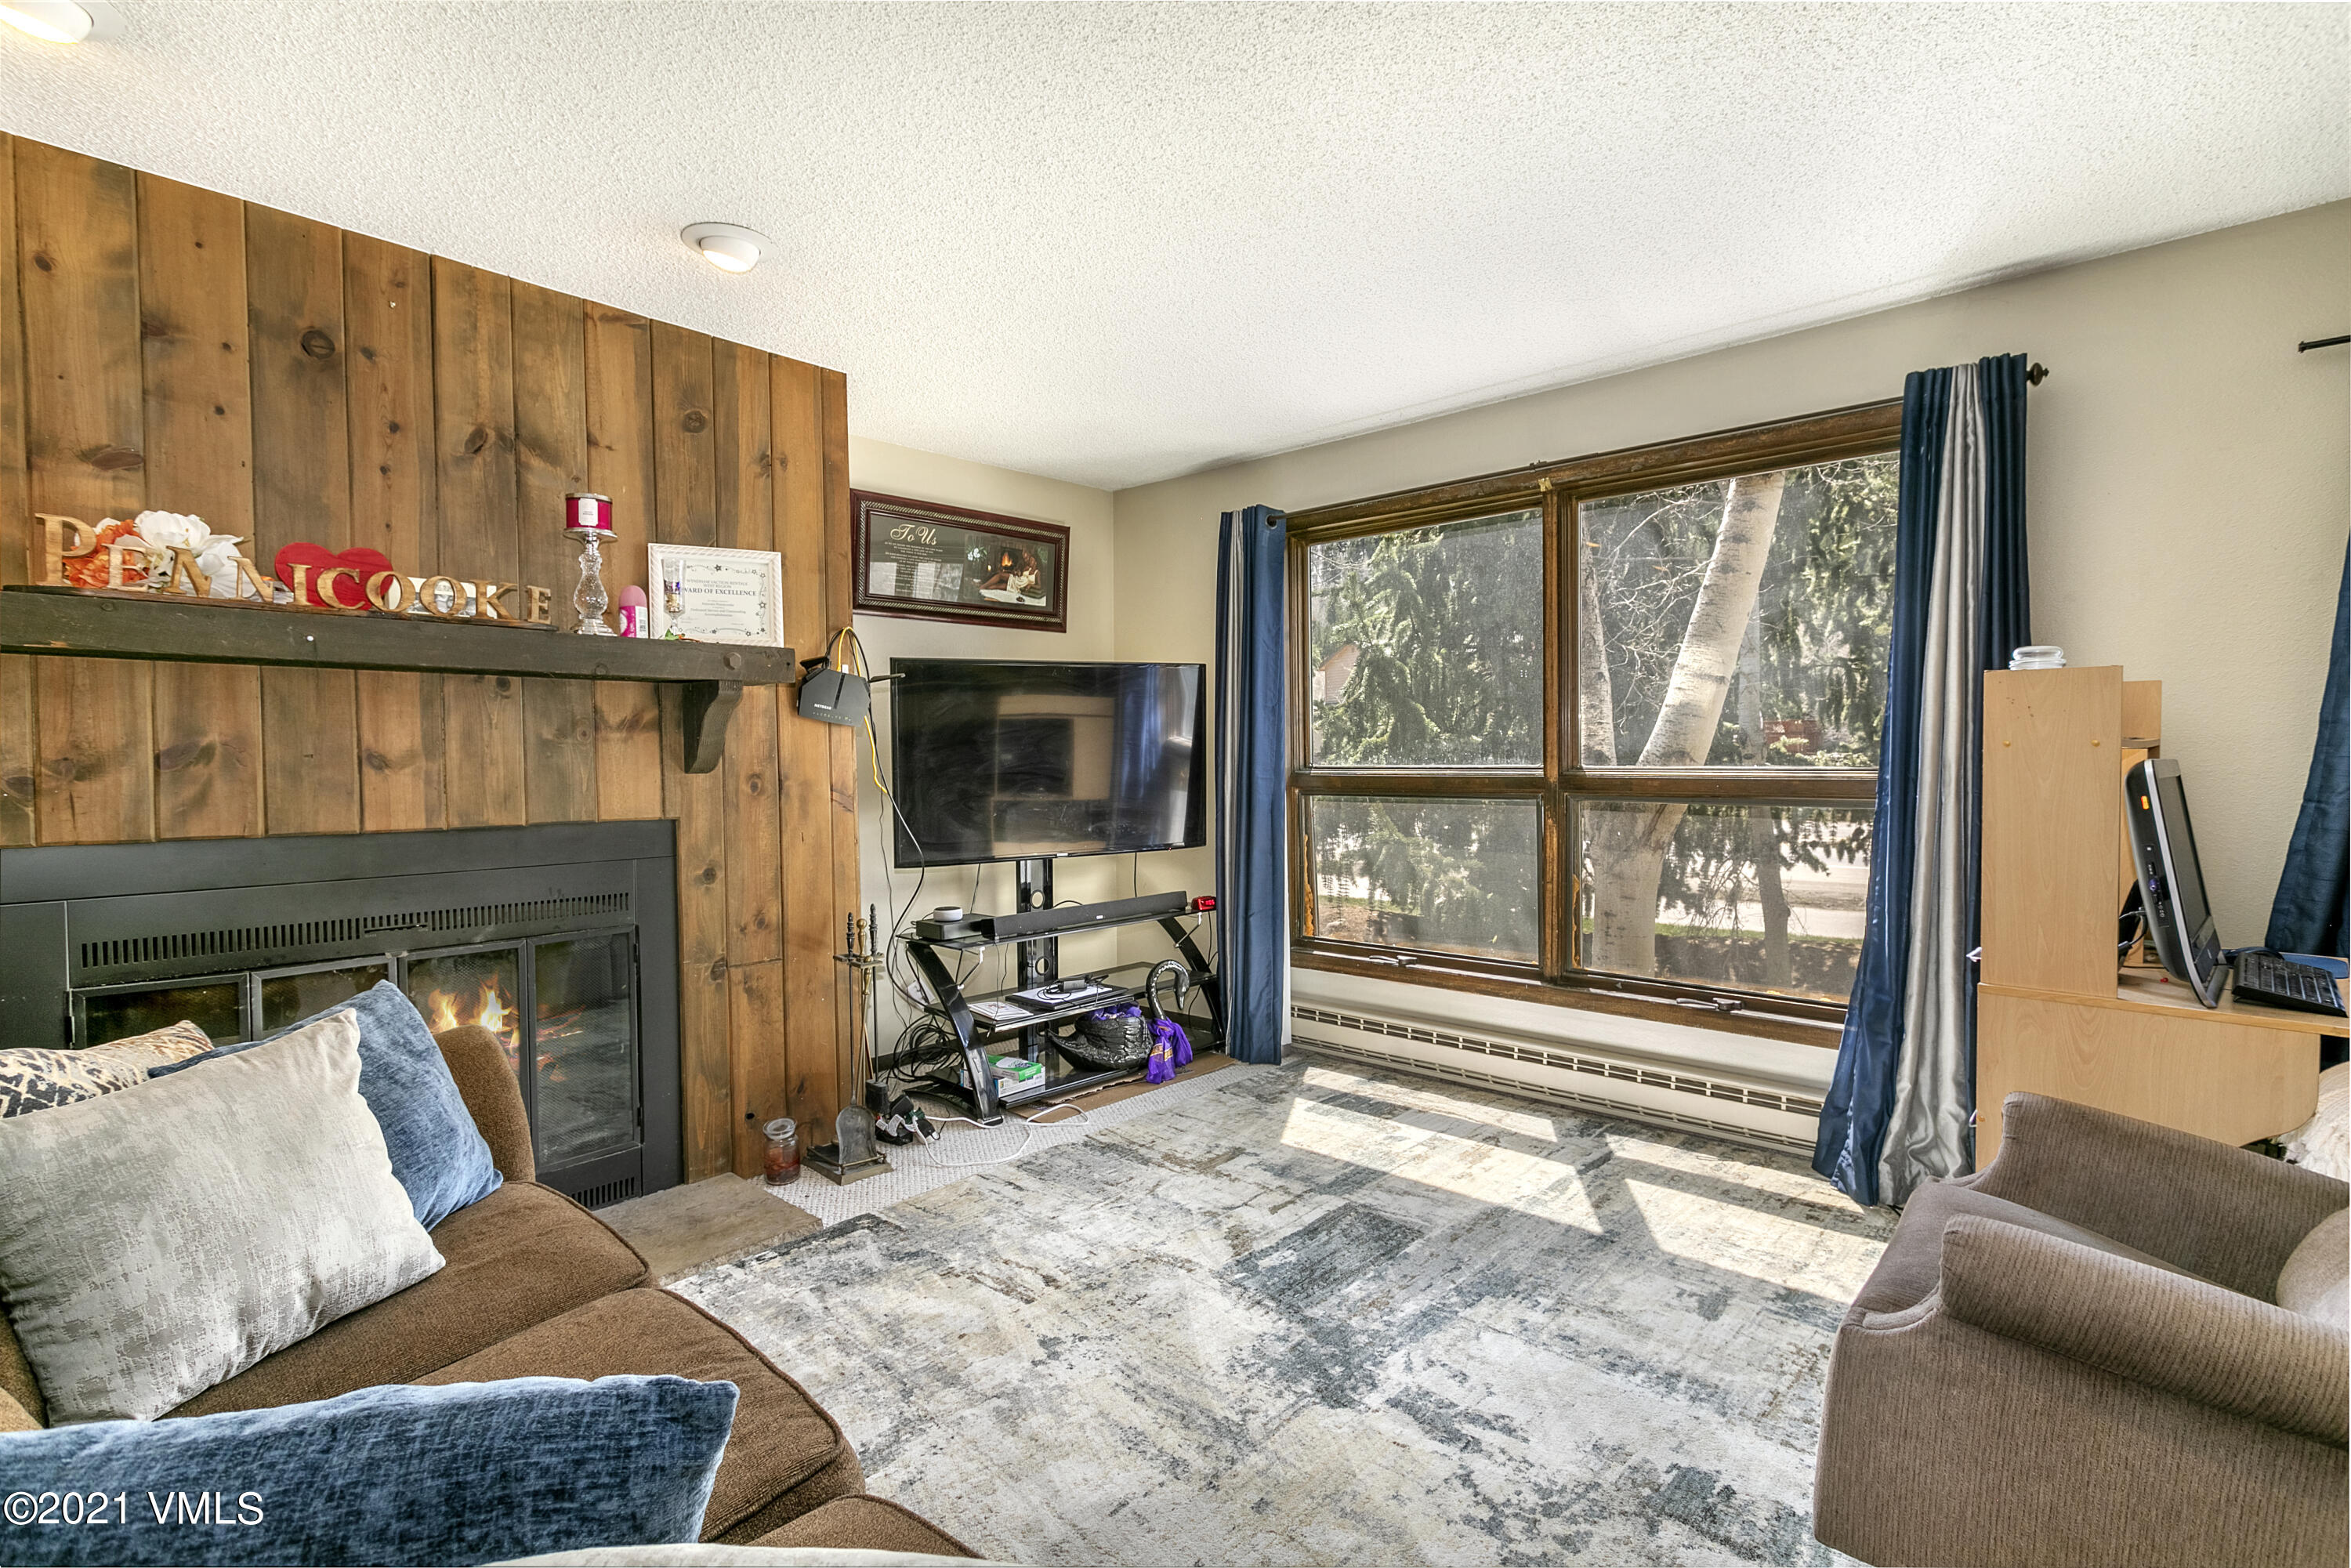 This meticulously clean second floor condo has two bedrooms and  2 full baths all on one level.   After the current tenants move out 10/31/21, the new owner will be ready to start the winter enjoying the wood burning fireplace and deck surrounded by trees.  There are several storage closets and unassigned surface parking.   With a well-managed HOA, this condo offers a great opportunity to get into the Vail real estate market at a reasonable price.